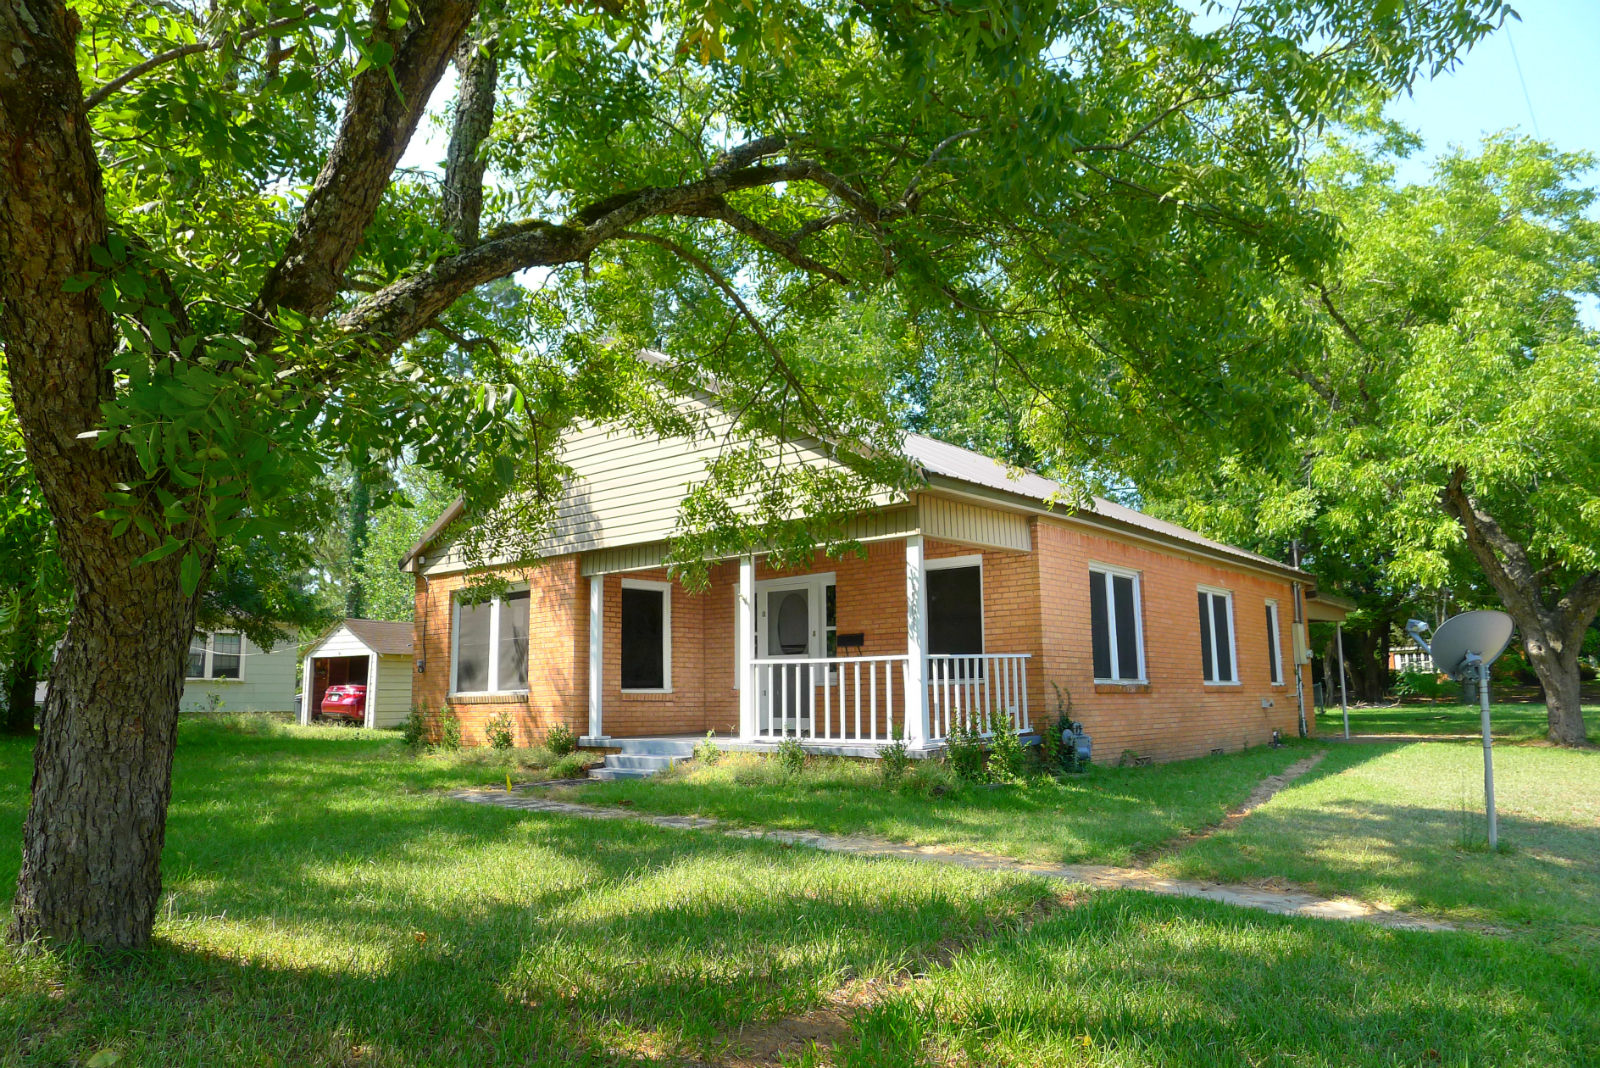 FOR RENT 2 Bed 1 Bath House- 1501 Crockett Rd, Palestine, TX